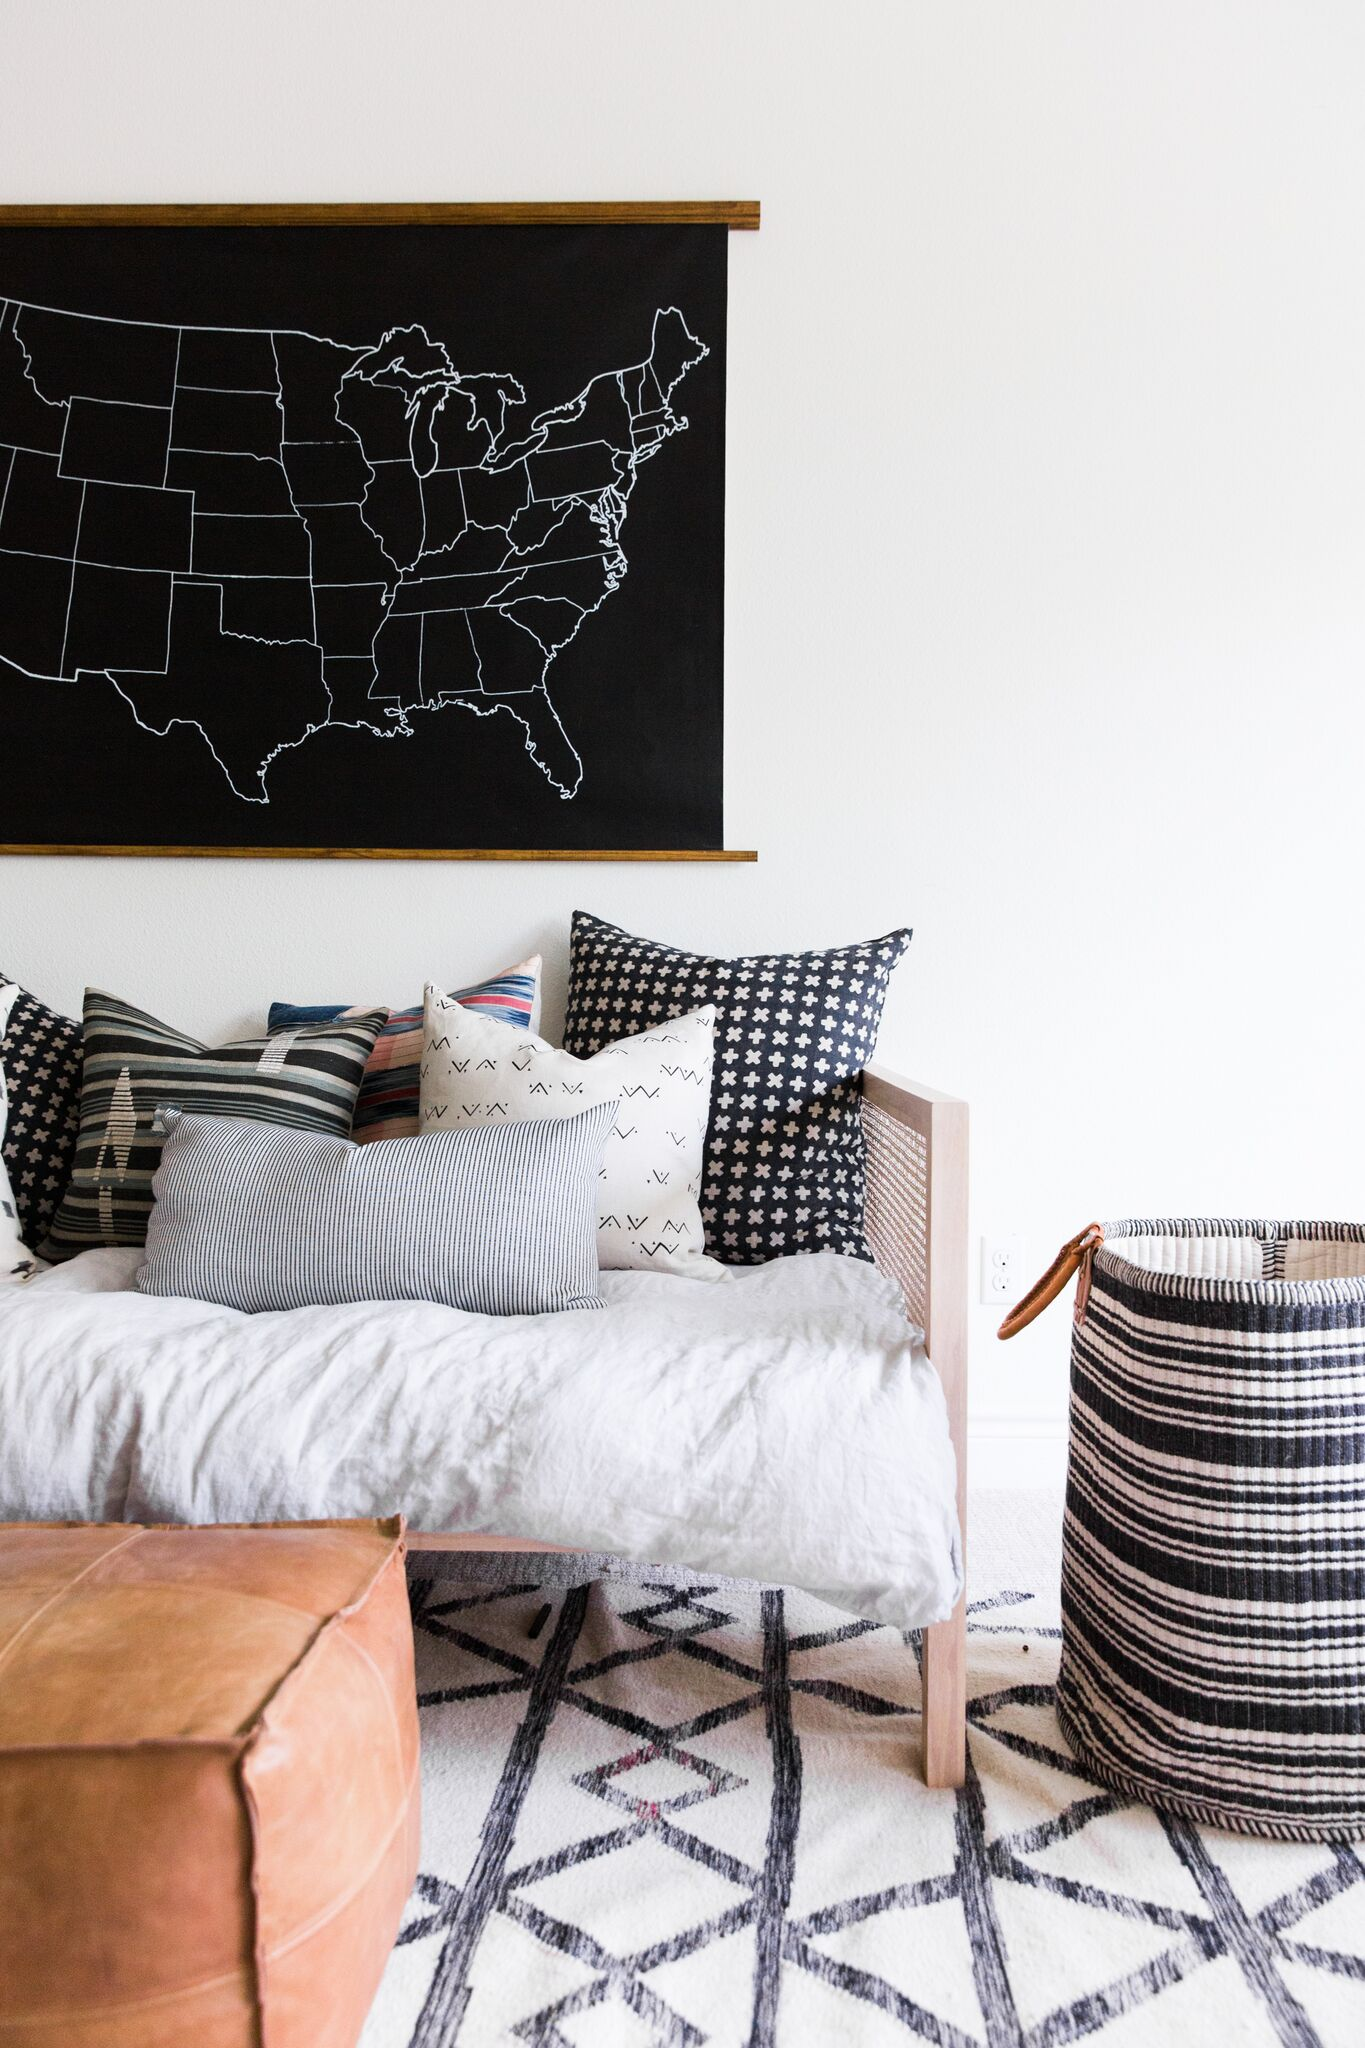 19Coastal+Bohemian+Kids'+Playroom+Featuring+a+Daybed+with+Eclectic+Throw+Pillows.jpg